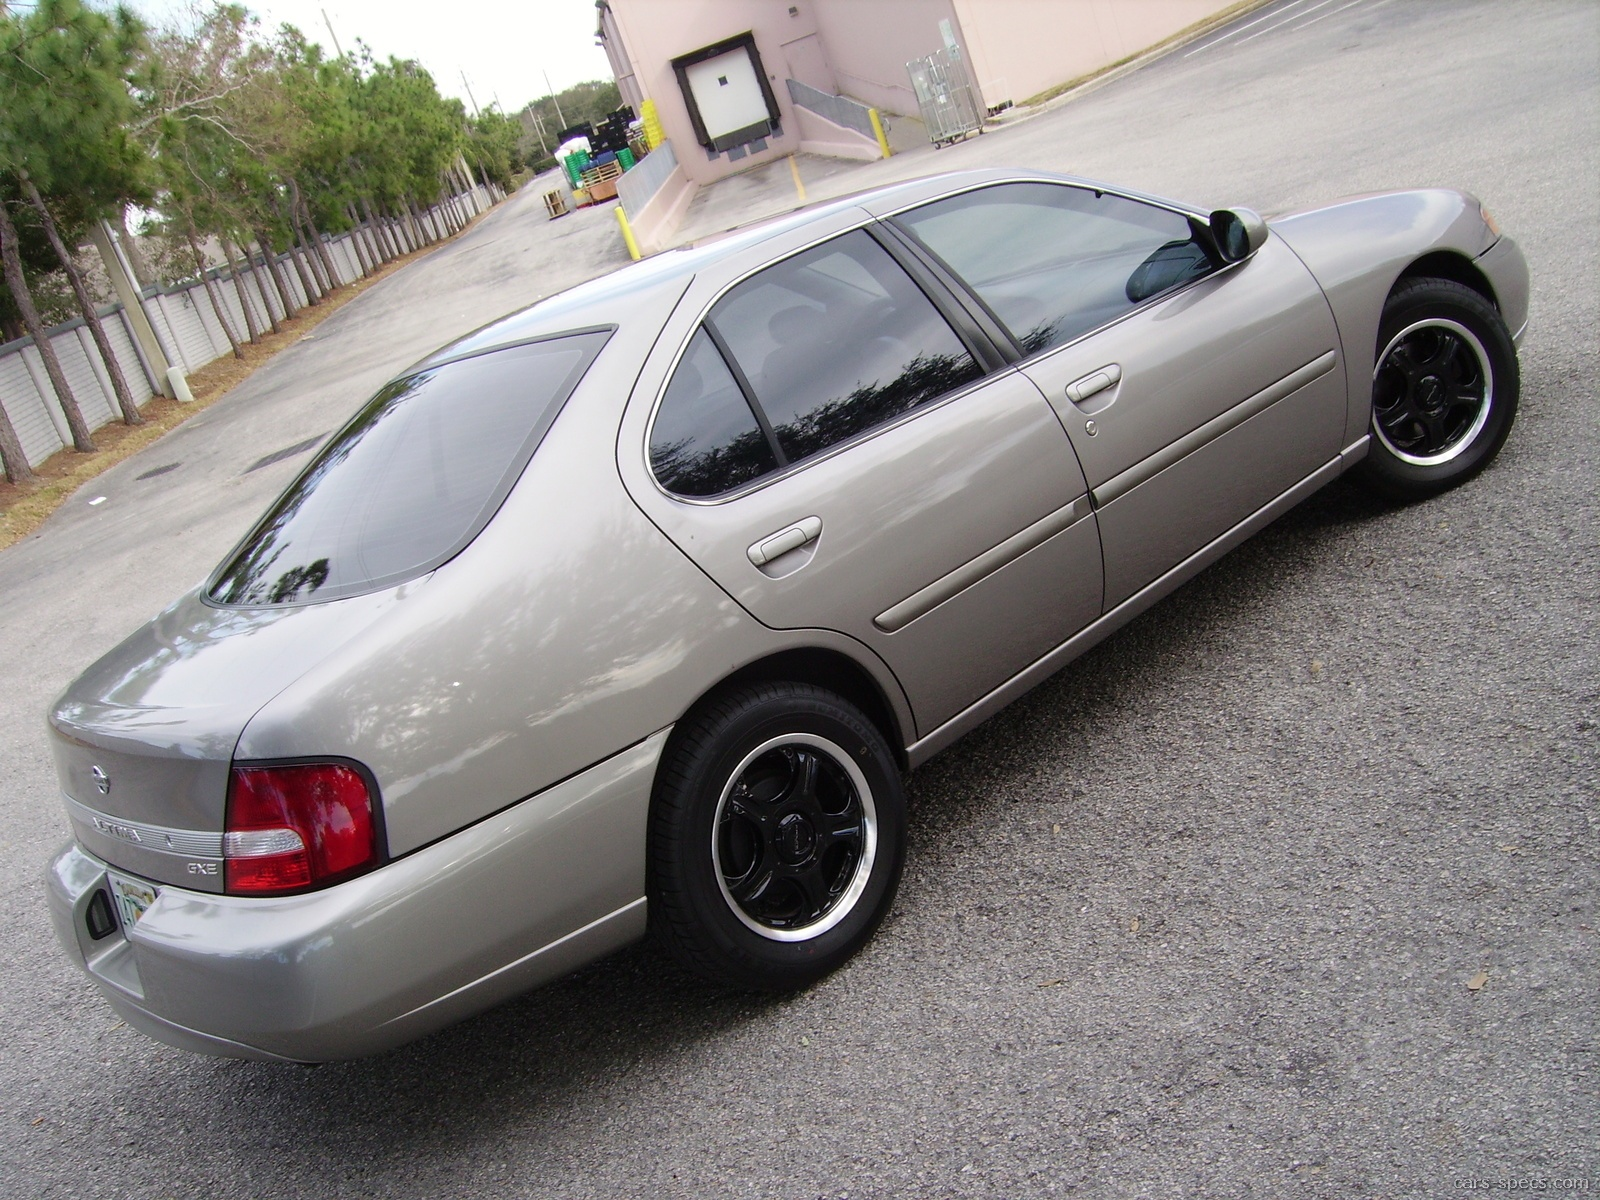 2000 nissan altima sedan specifications pictures prices rh cars specs com 1997  Nissan Altima GXE Specs 1997 Nissan Sentra GXE Manual